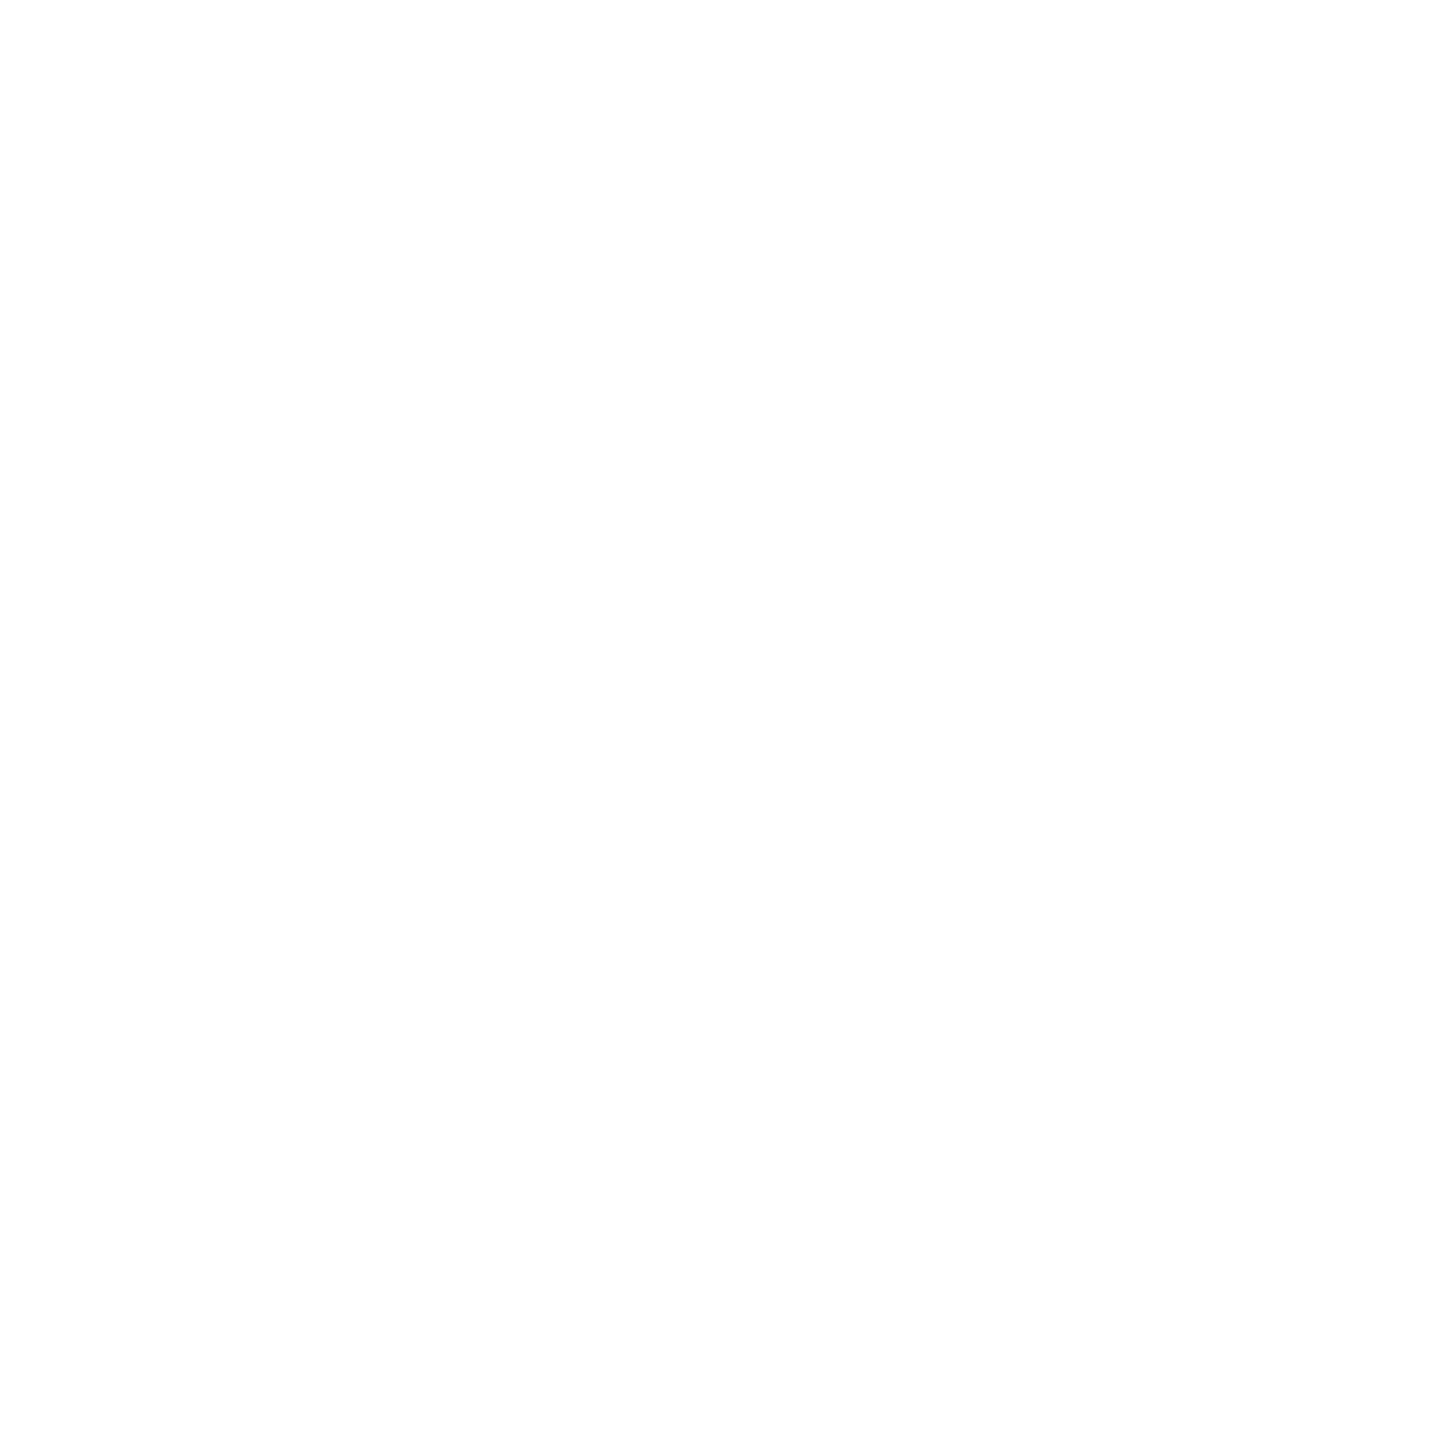 Benefits-Page-Icons-02.png